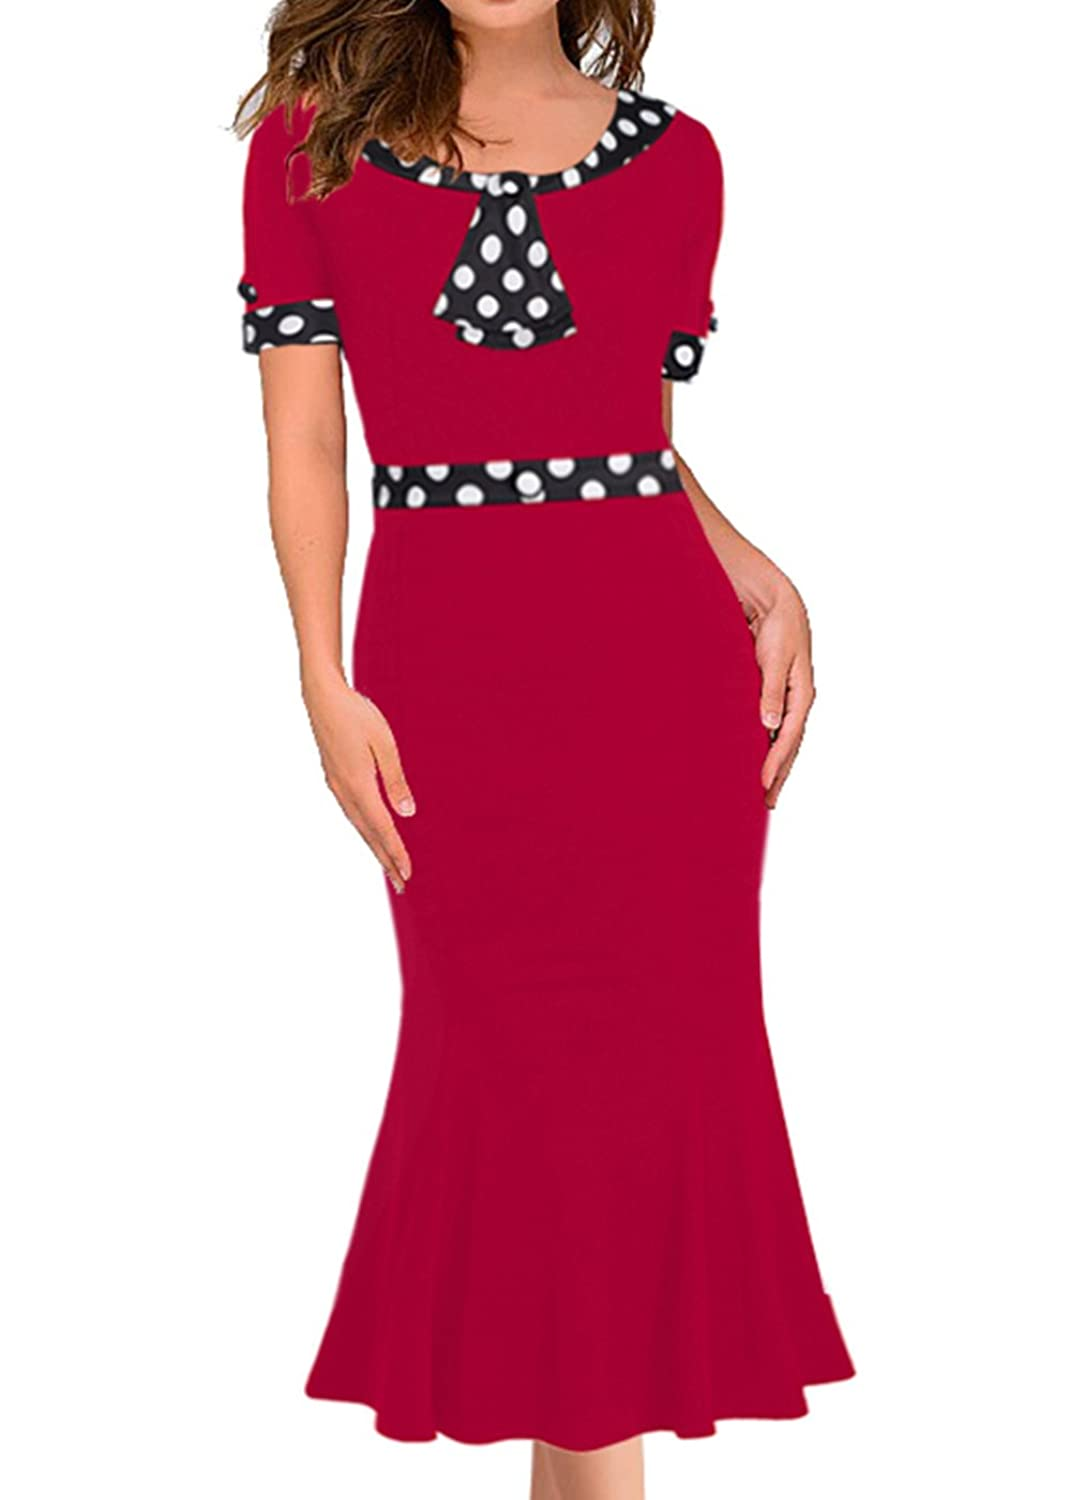 Vintage Polka Dot Dresses – Ditsy 50s Prints Womens Vintage 1950s Elegant Polka Dot Bow-knot Fishtail Cocktail Party Dress $24.99 AT vintagedancer.com